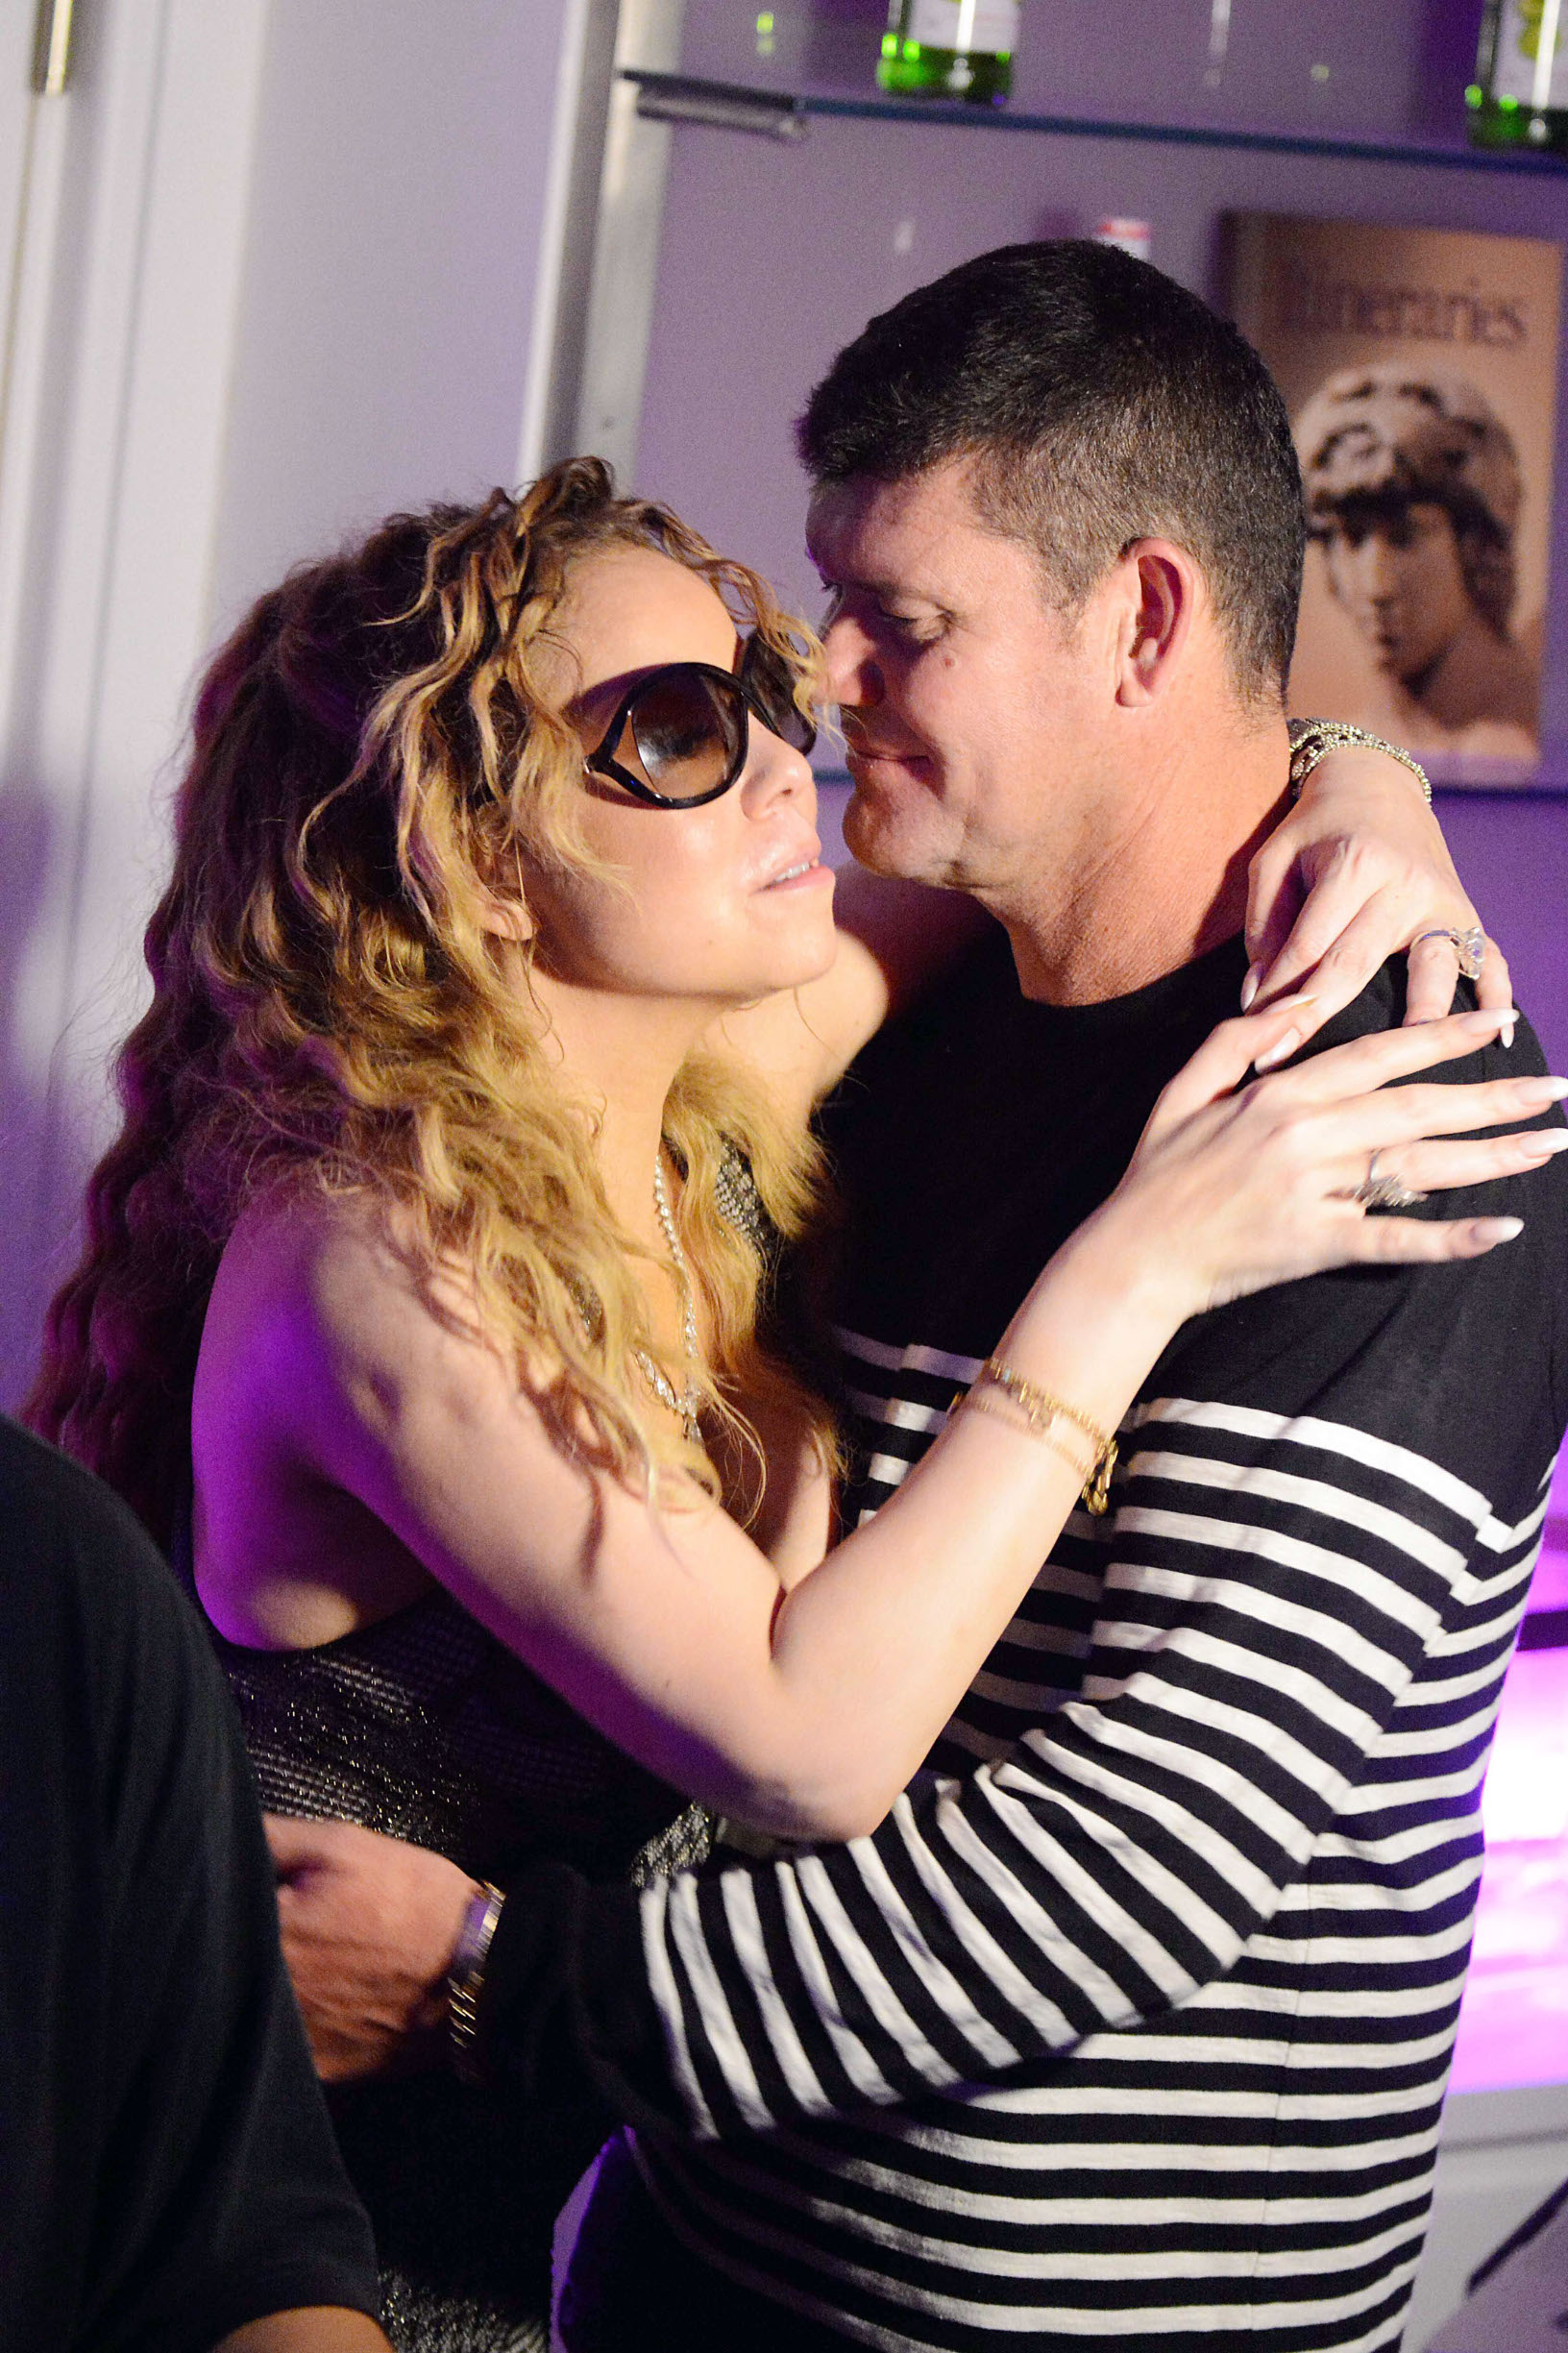 25 JULY 2016 - Capri - Italy  *** EXCLUSIVE PICTURES NOT AVAILABLE FOR ITALY, FRANCE GERMANY AND SPAIN ***  Singer Mariah Carey pictured partying the night away with Billionaire Australian Boyfriend James Packer while on Holiday in Capri, The happy couple can be seen looking very much loved up as they are seen dancing and smooching while knocking back the drinks on the dance floor before leaving with friends and security and heading to their awaiting boat back to the super yacht.,Image: 294939170, License: Rights-managed, Restrictions: EXCLUSIVE PICTURES - ***EXCLUSIVE PICTURES NOT AVAILABLE FOR ITALY, FRANCE GERMANY AND SPAIN*** *UK CLIENTS - PLEASE PIXELATE CHILDS FACE BEFORE PUBLICATION **UK CLIENTS MUST CALL PRIOR TO TV OR ONLINE USAGE PLEASE TELEPHONE 44 208 344 2007**, Model Release: no, Credit line: CPRMP / Backgrid UK / Profimedia